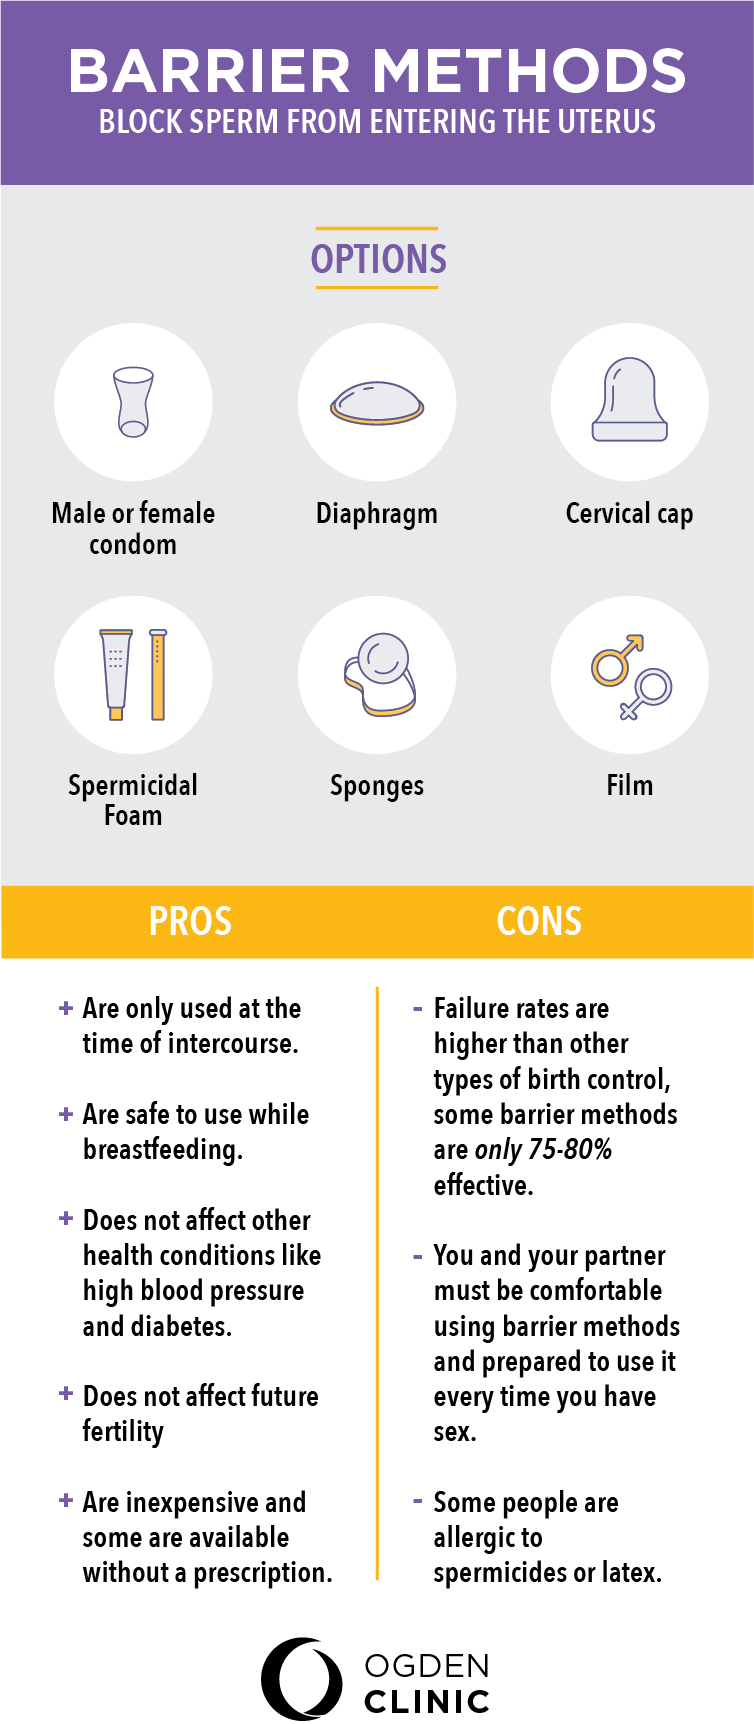 Birth control options, contraception differences, OB/GYN